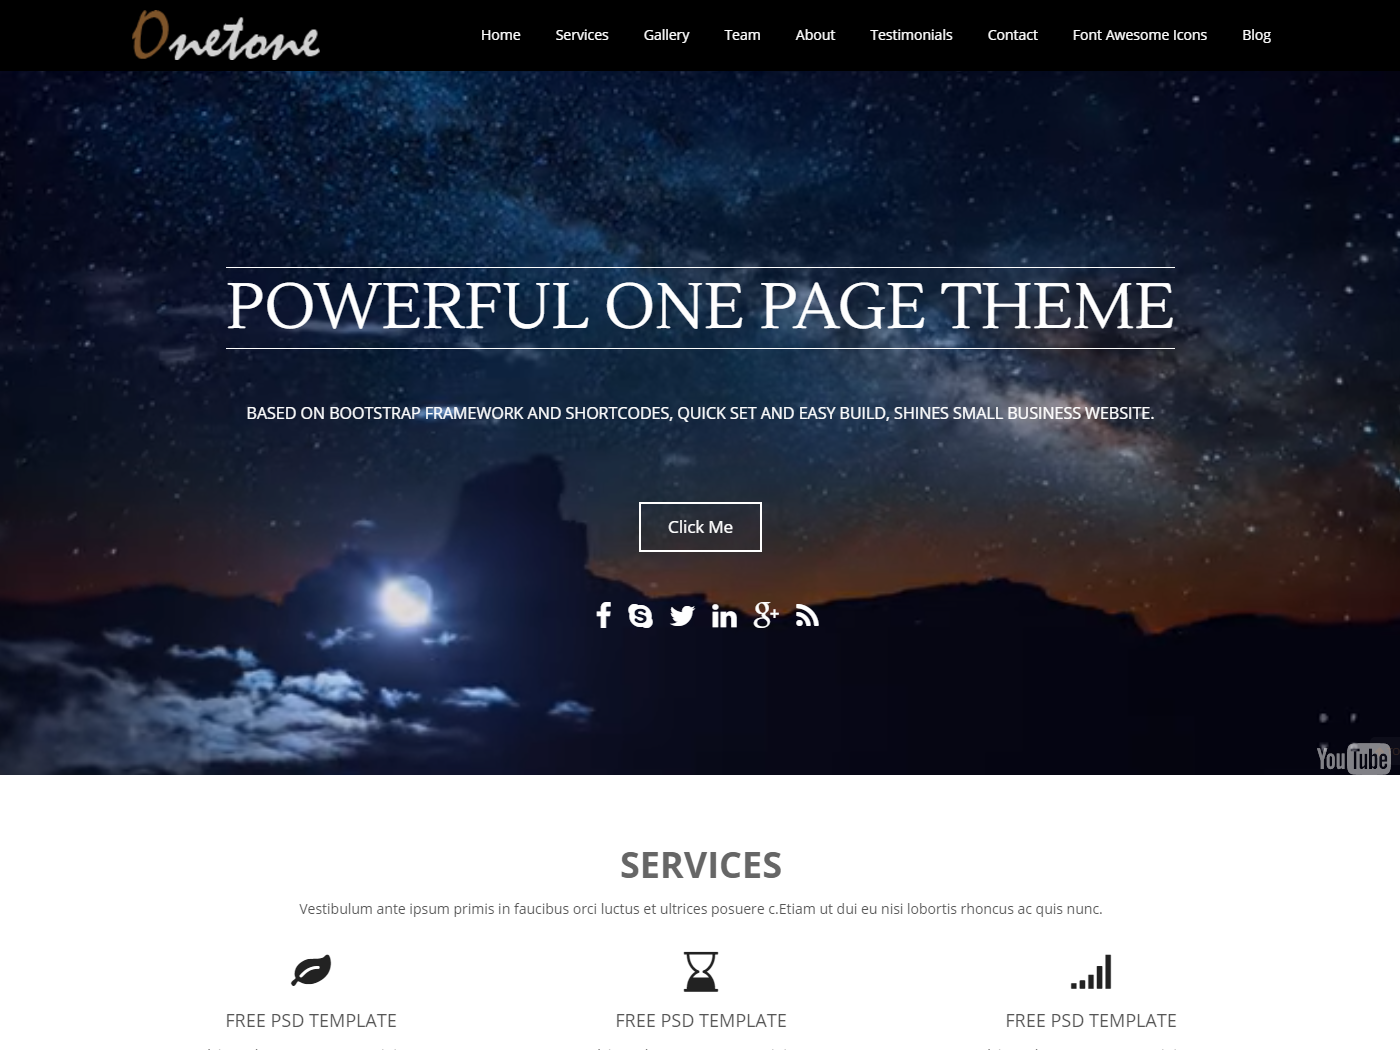 onetone-free-wordpress-theme